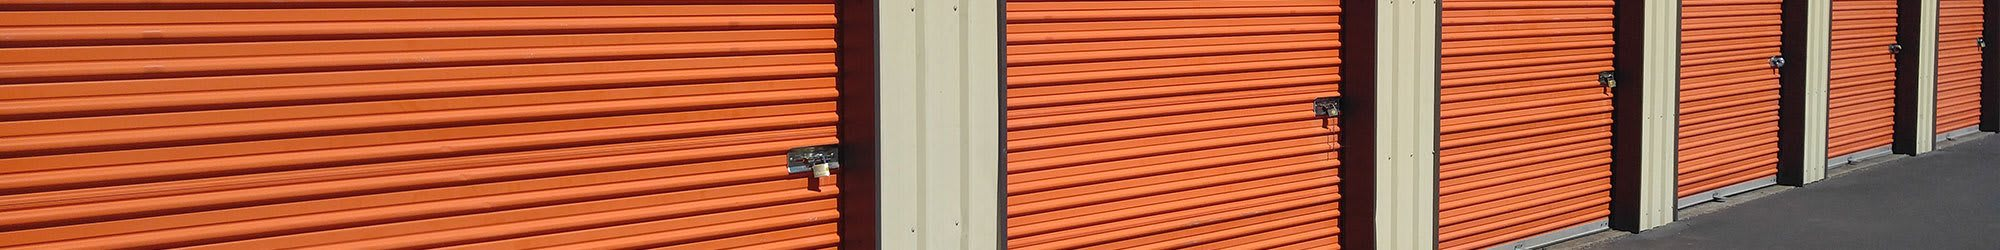 Reviews of self storage in Woodburn, OR